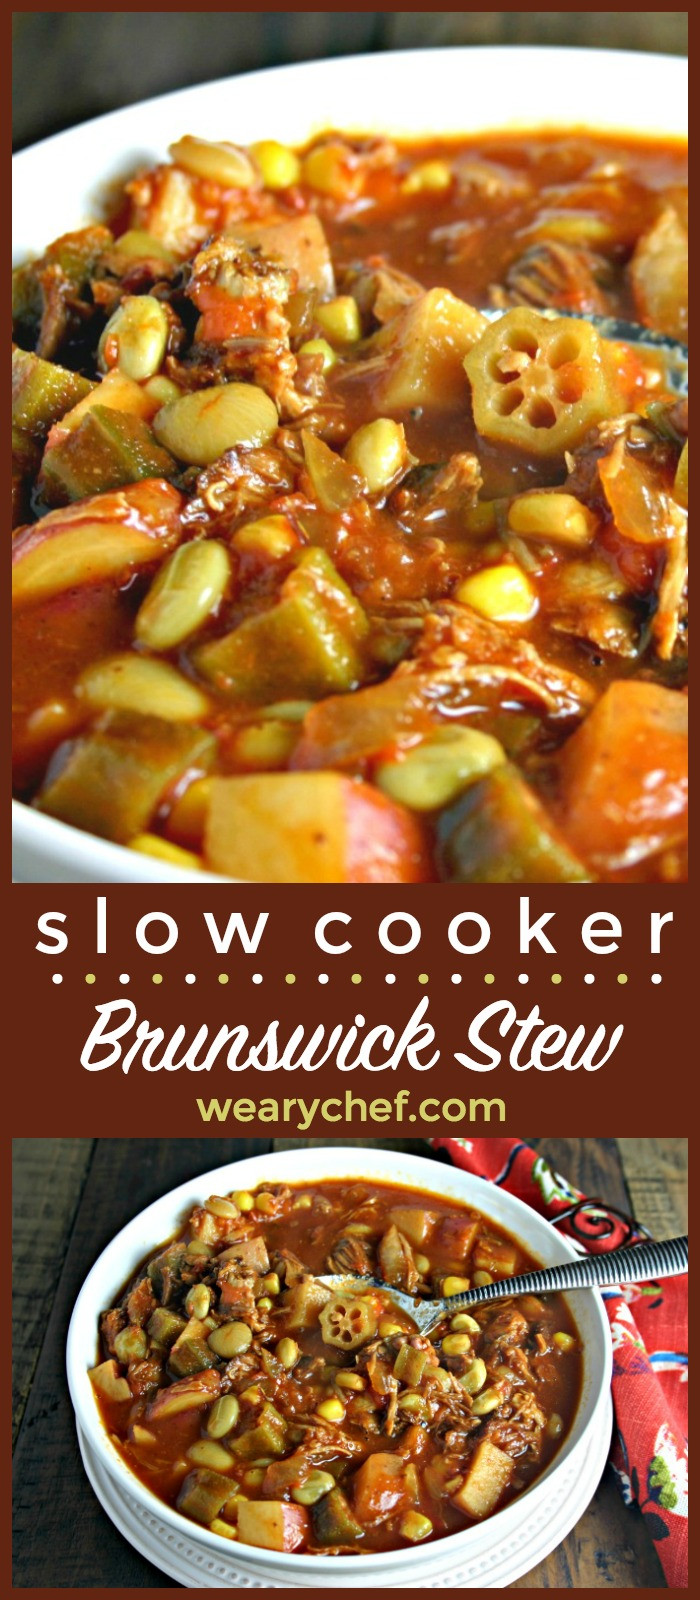 Easy Brunswick Stew Recipe  Easy Brunswick Stew in the Slow Cooker The Weary Chef